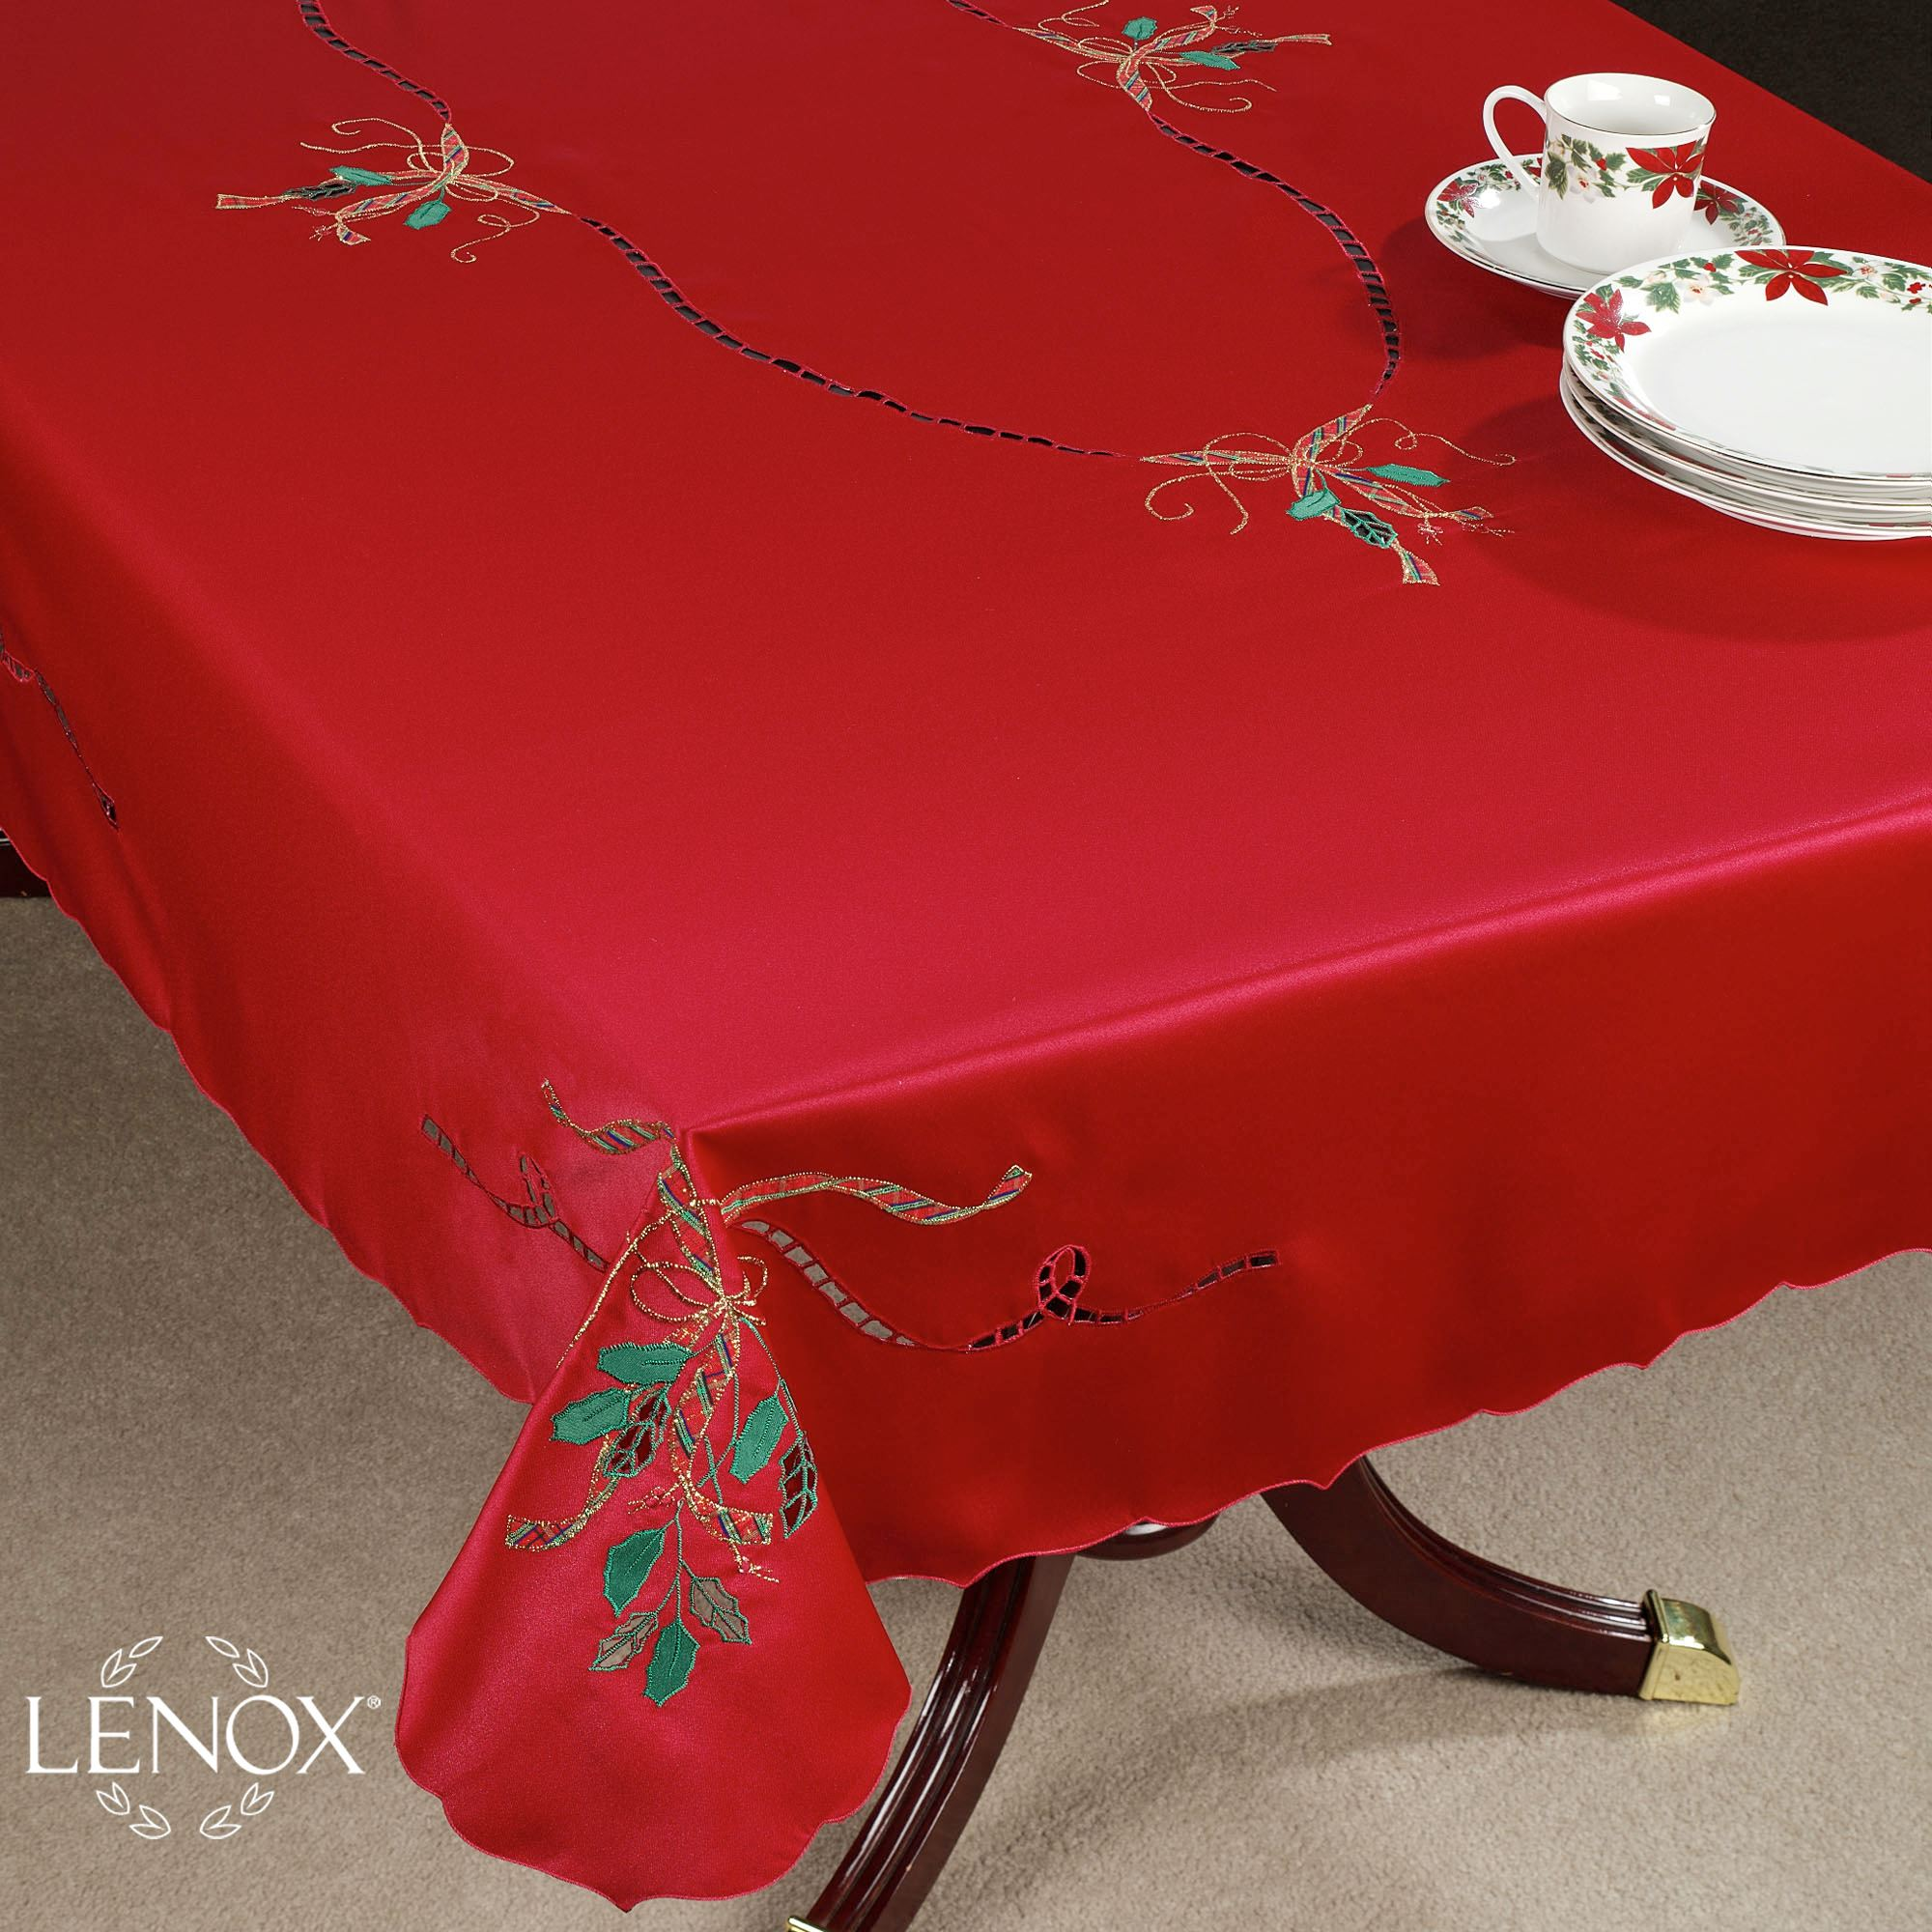 lenox holiday nouveau cutwork table linens accent cloth covers tablecloth storage target ott tray laundry basket flannel backed vinyl oil rubbed bronze side trestle chairs antique